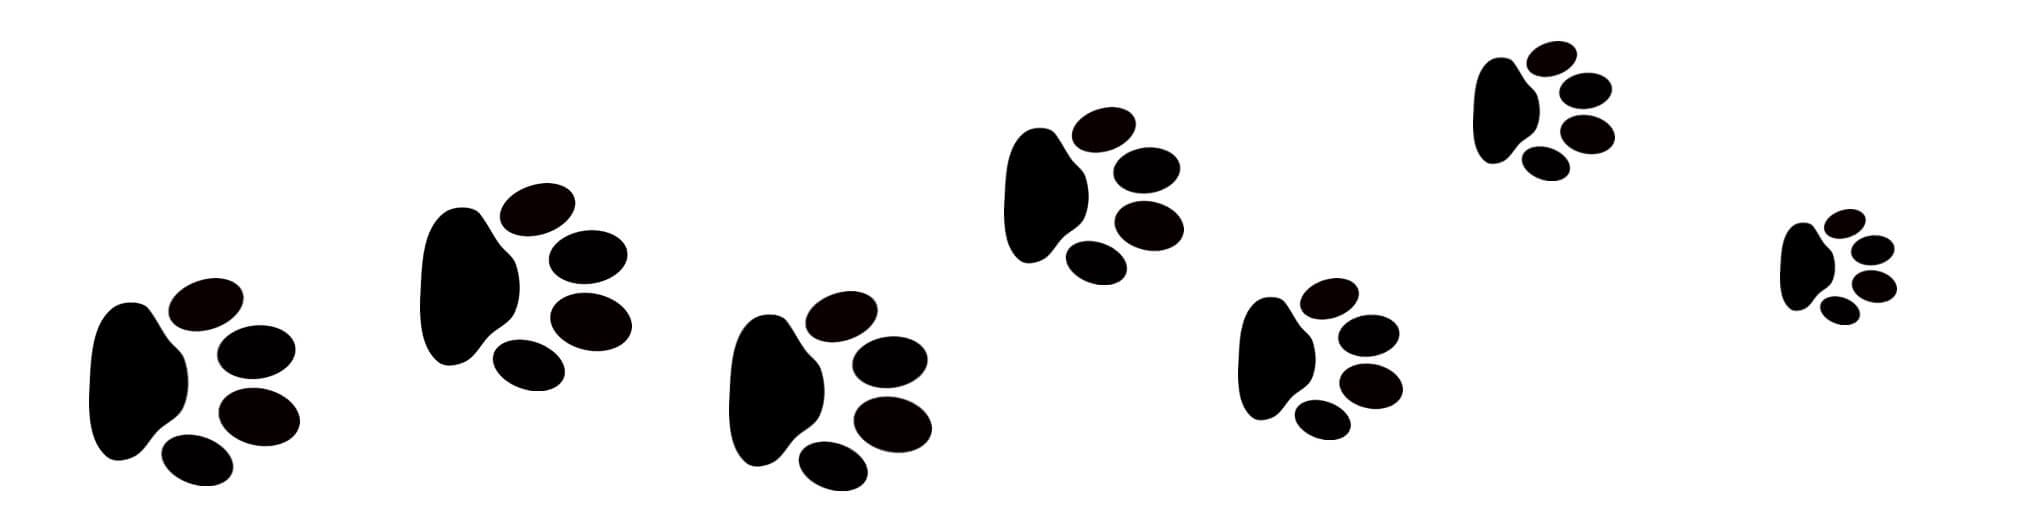 Image of Bunny paw prints